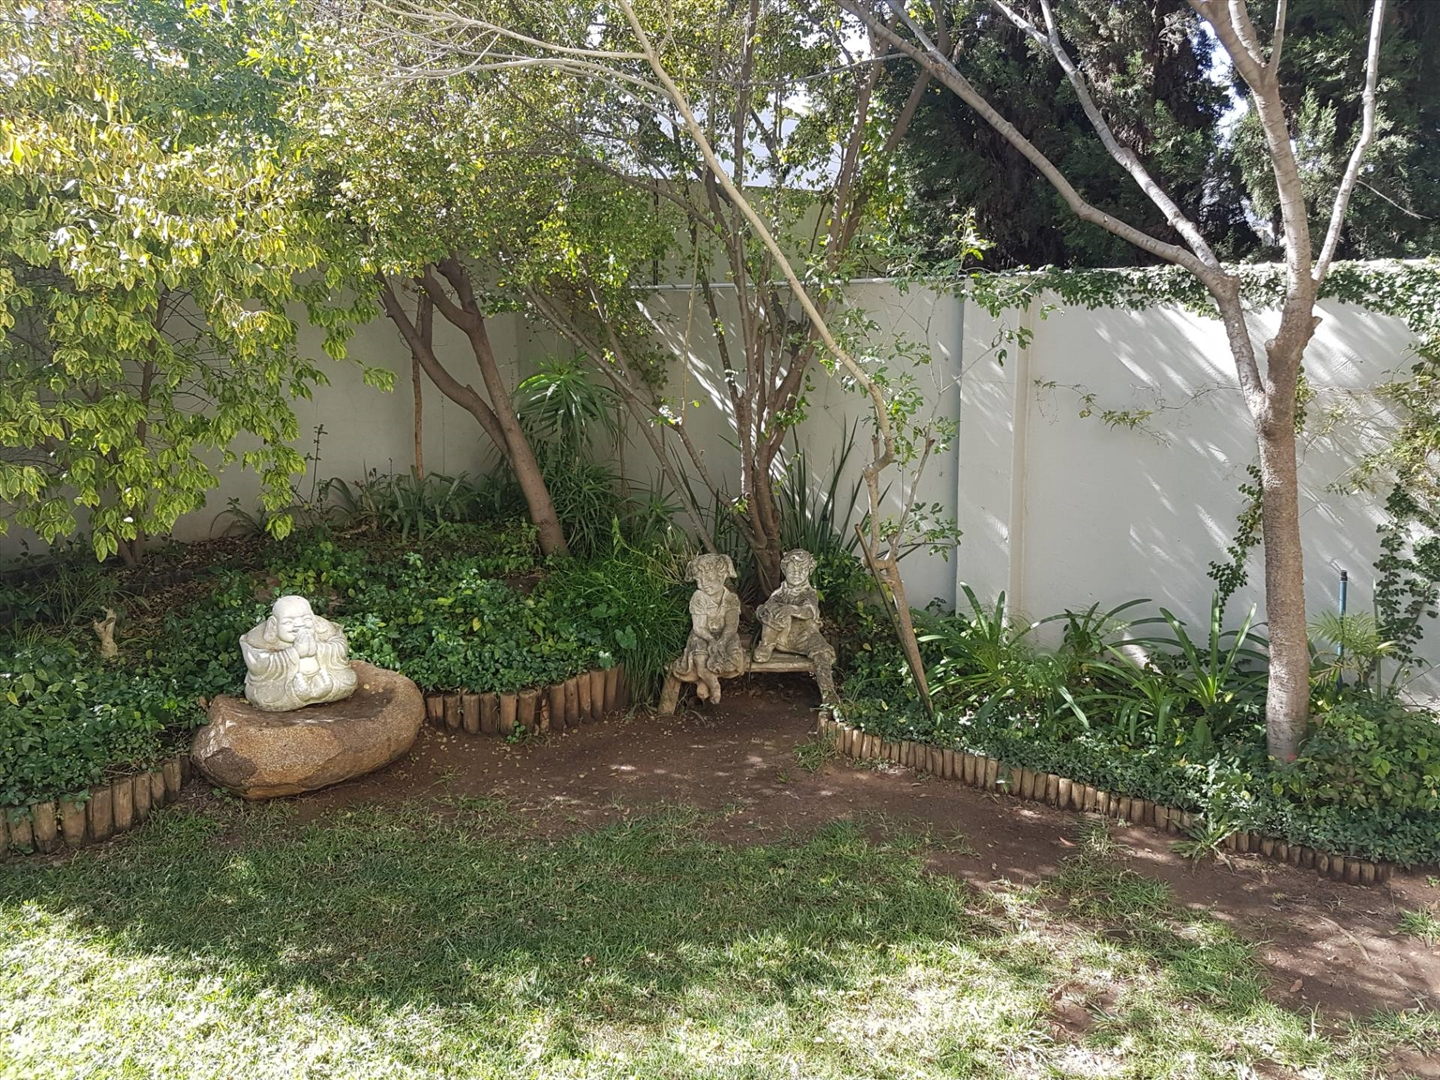 2 Bedroom Townhouse in Sandown, Sandton For Sale for R 1,375,000 #1858801